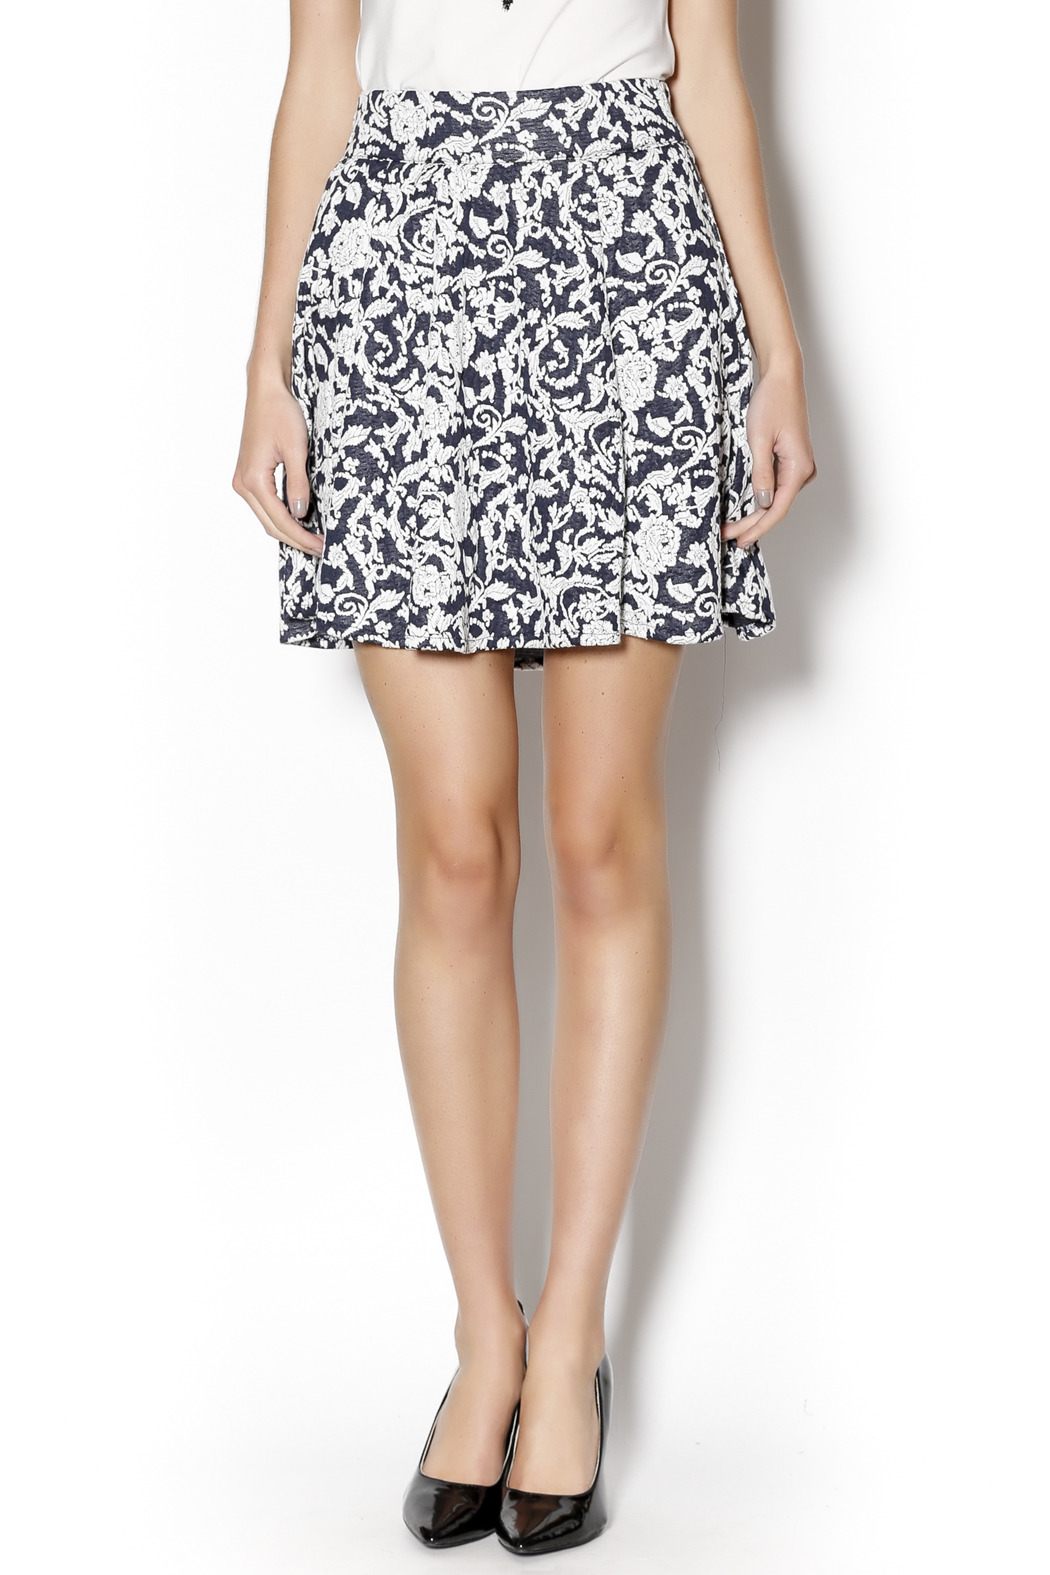 Angie Floral Swing Skirt - Main Image